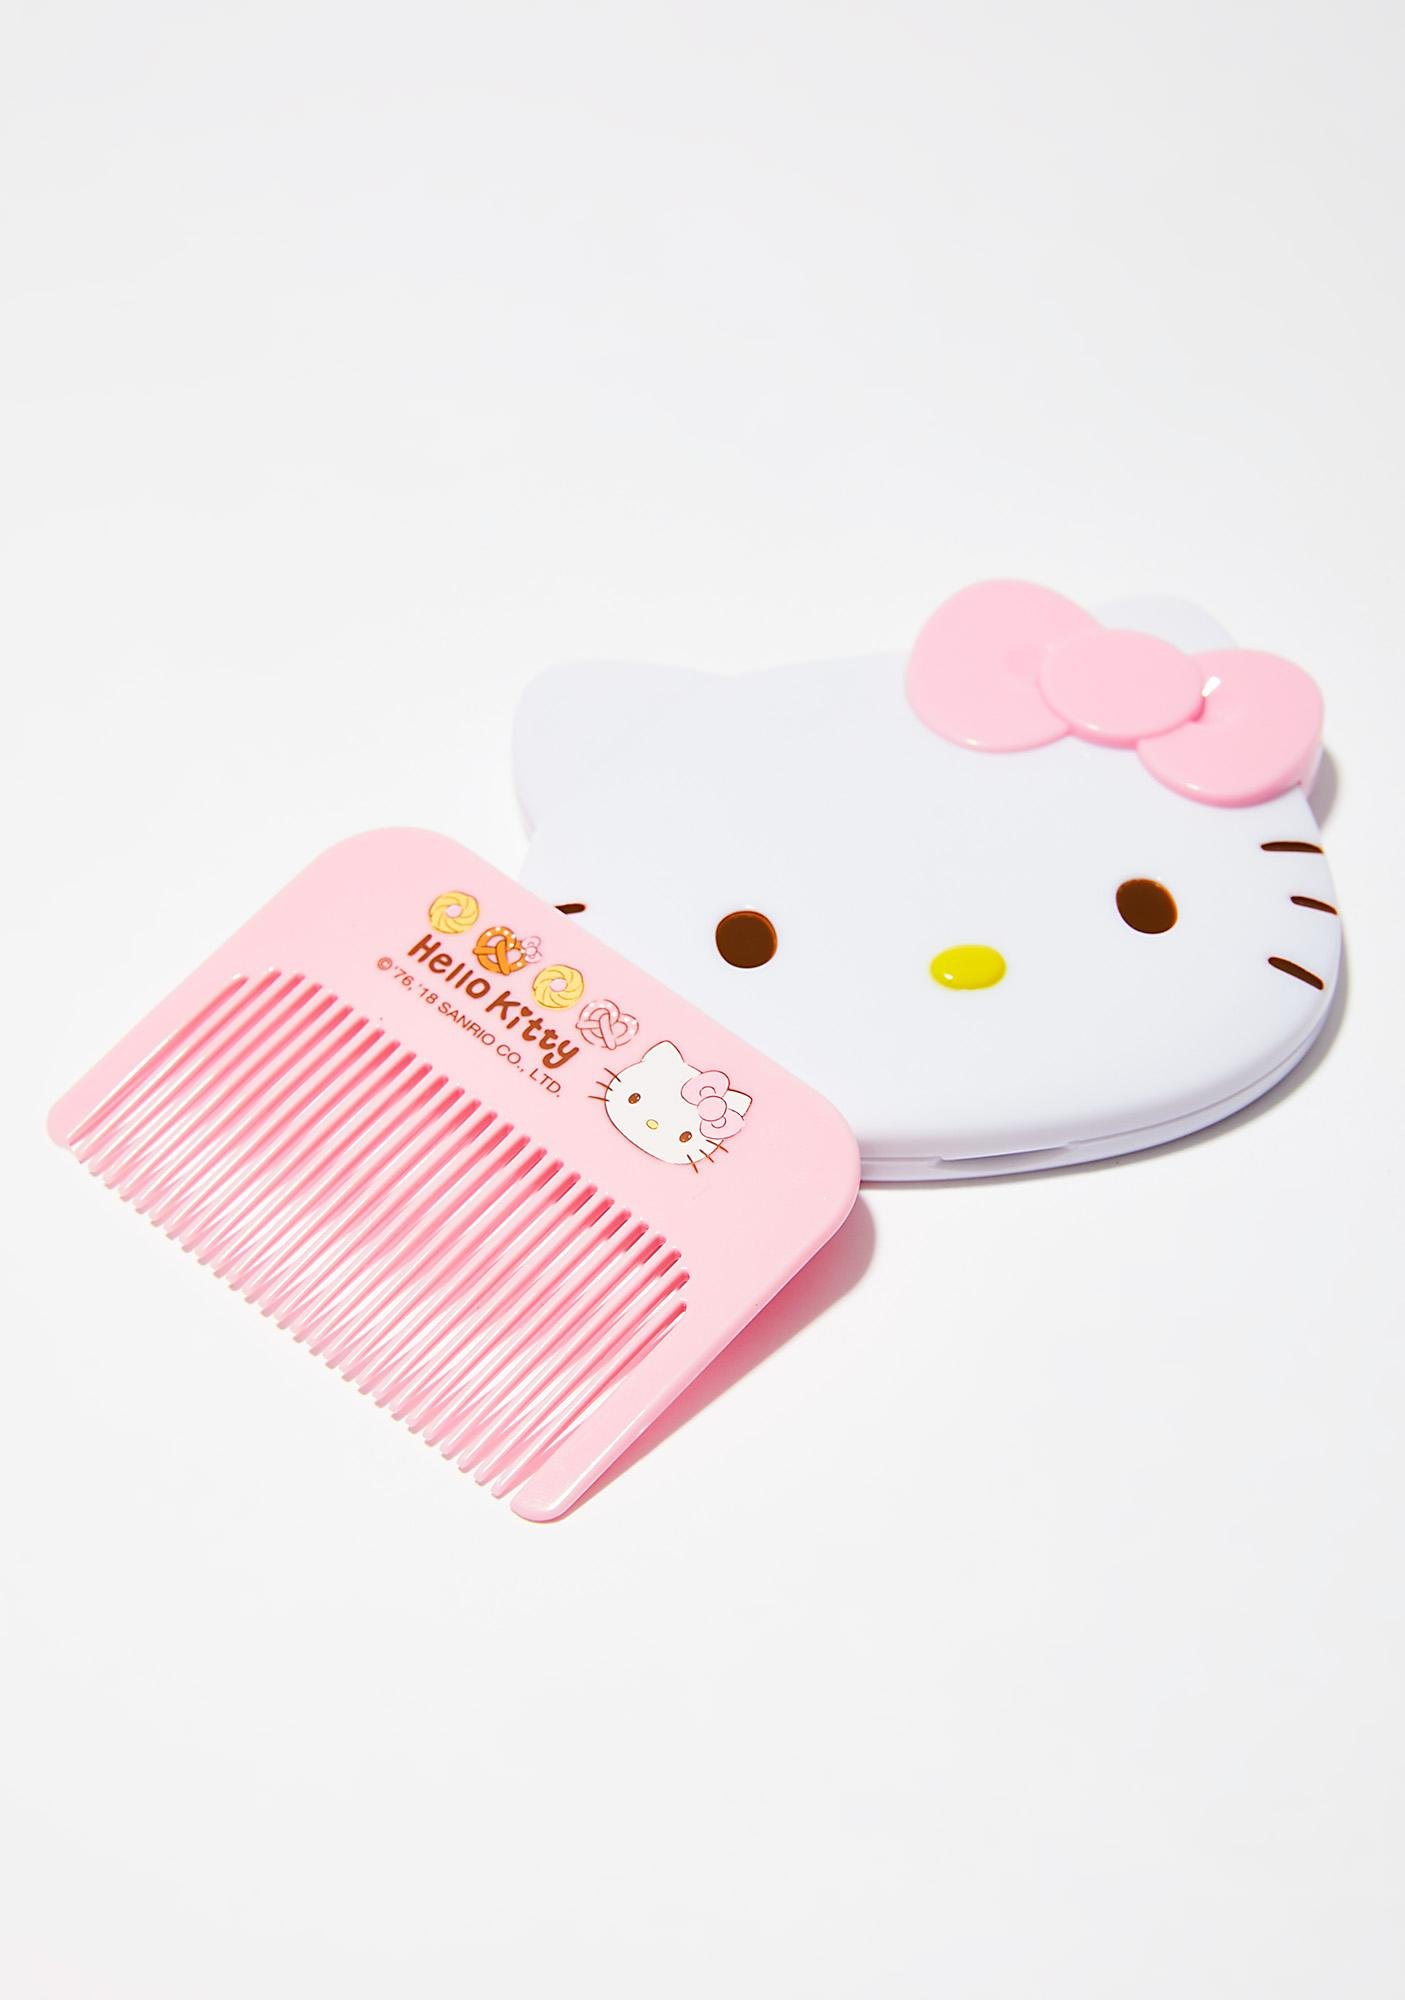 Sanrio Mirror And Comb Set